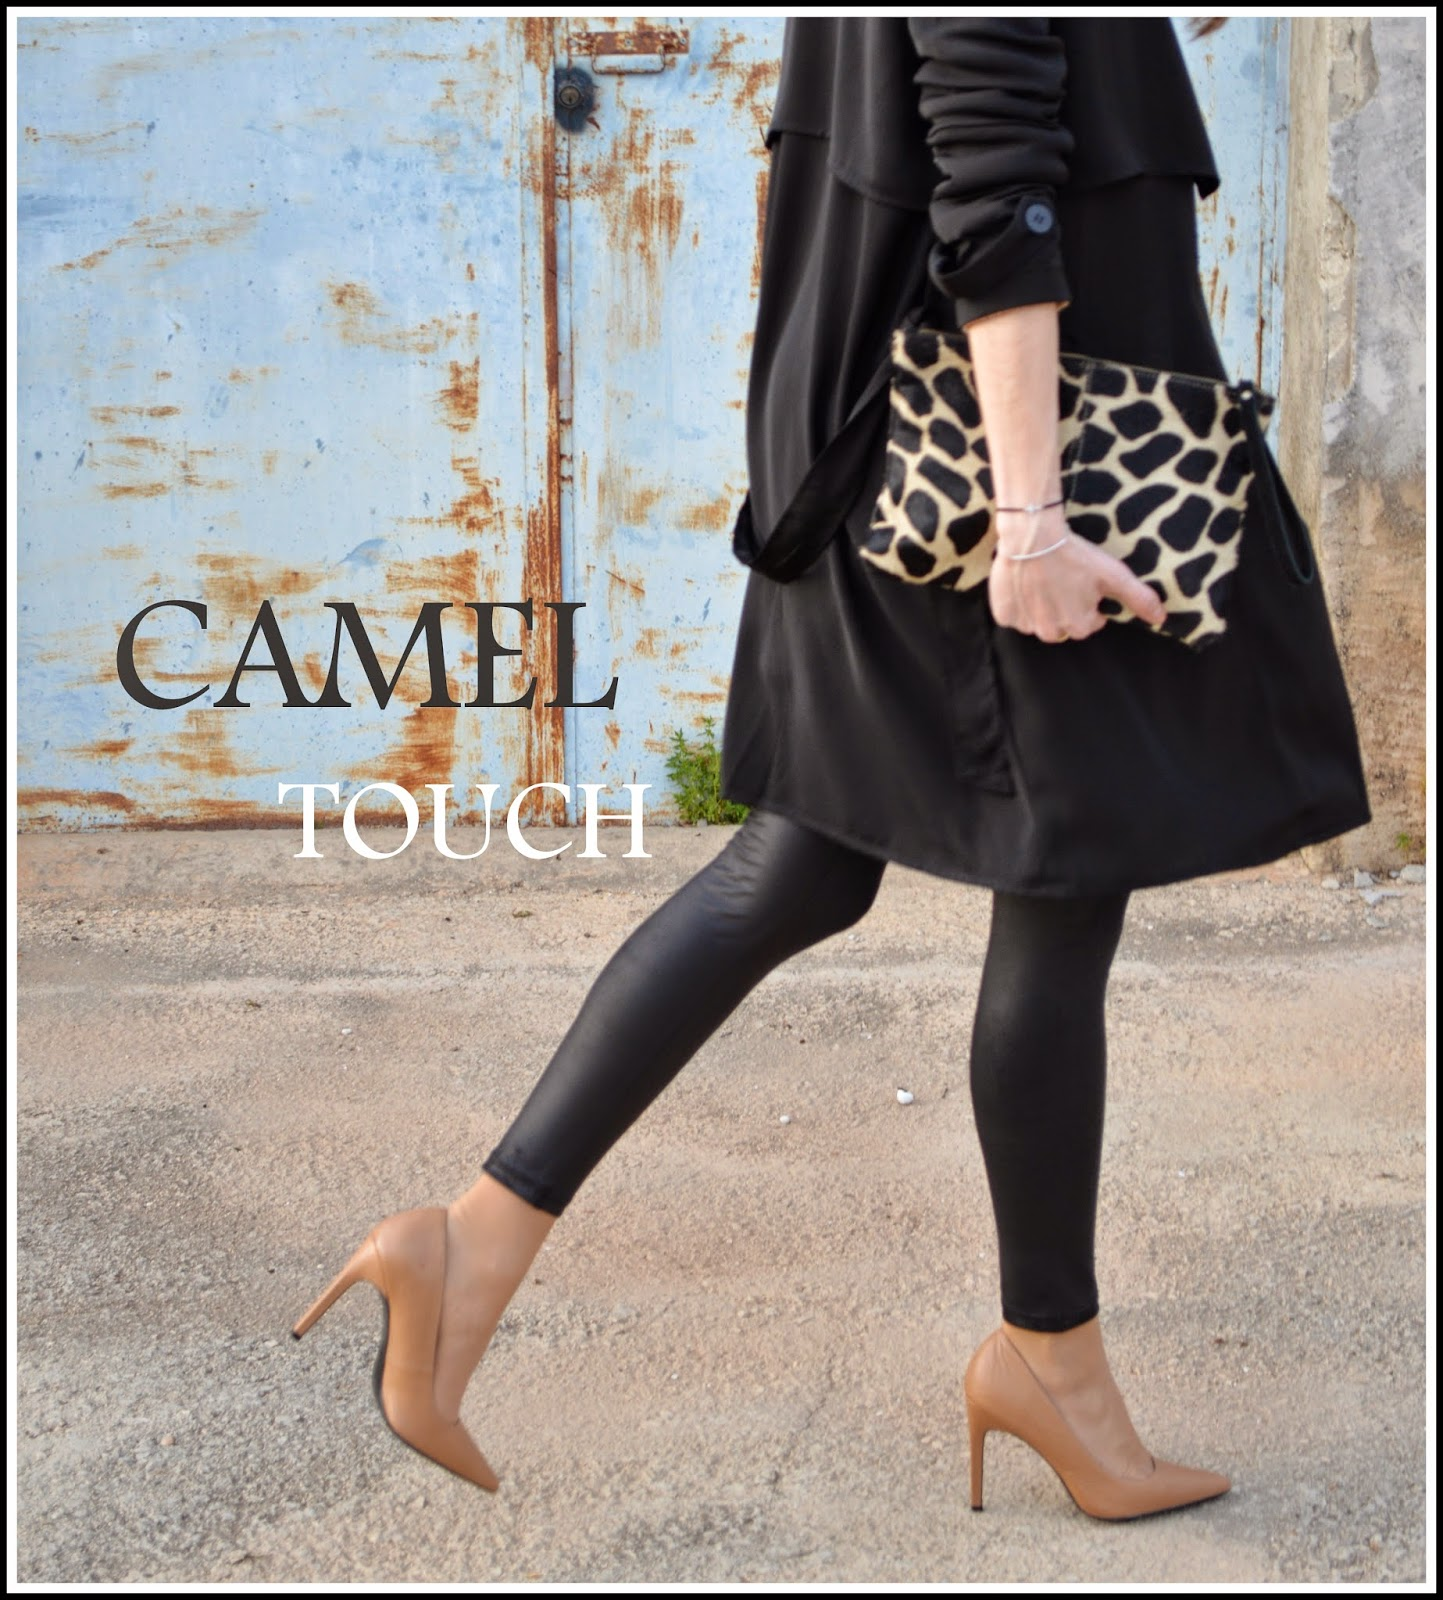 http://lookfortime.blogspot.com.es/2015/04/camel-touch.html#more